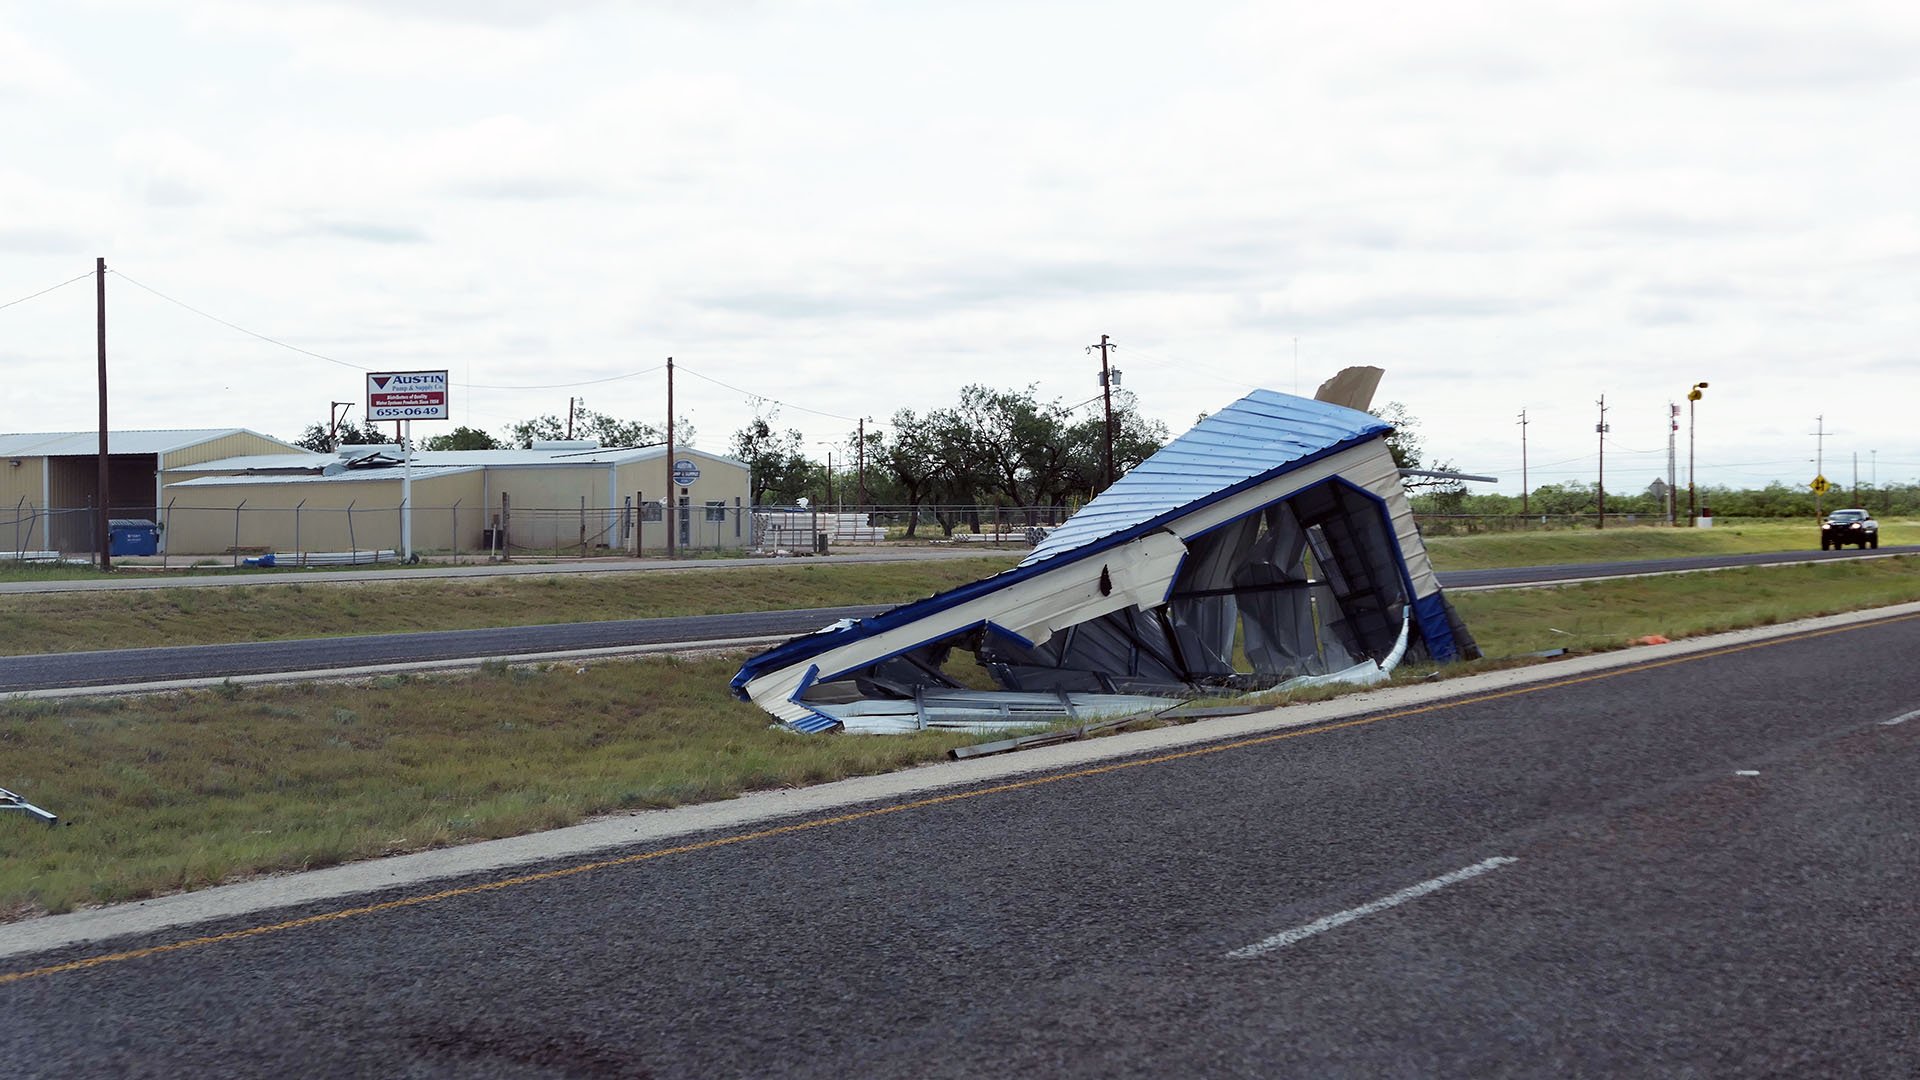 Photos of June 23rd 2017 Storm Damage - San Angelo, TX